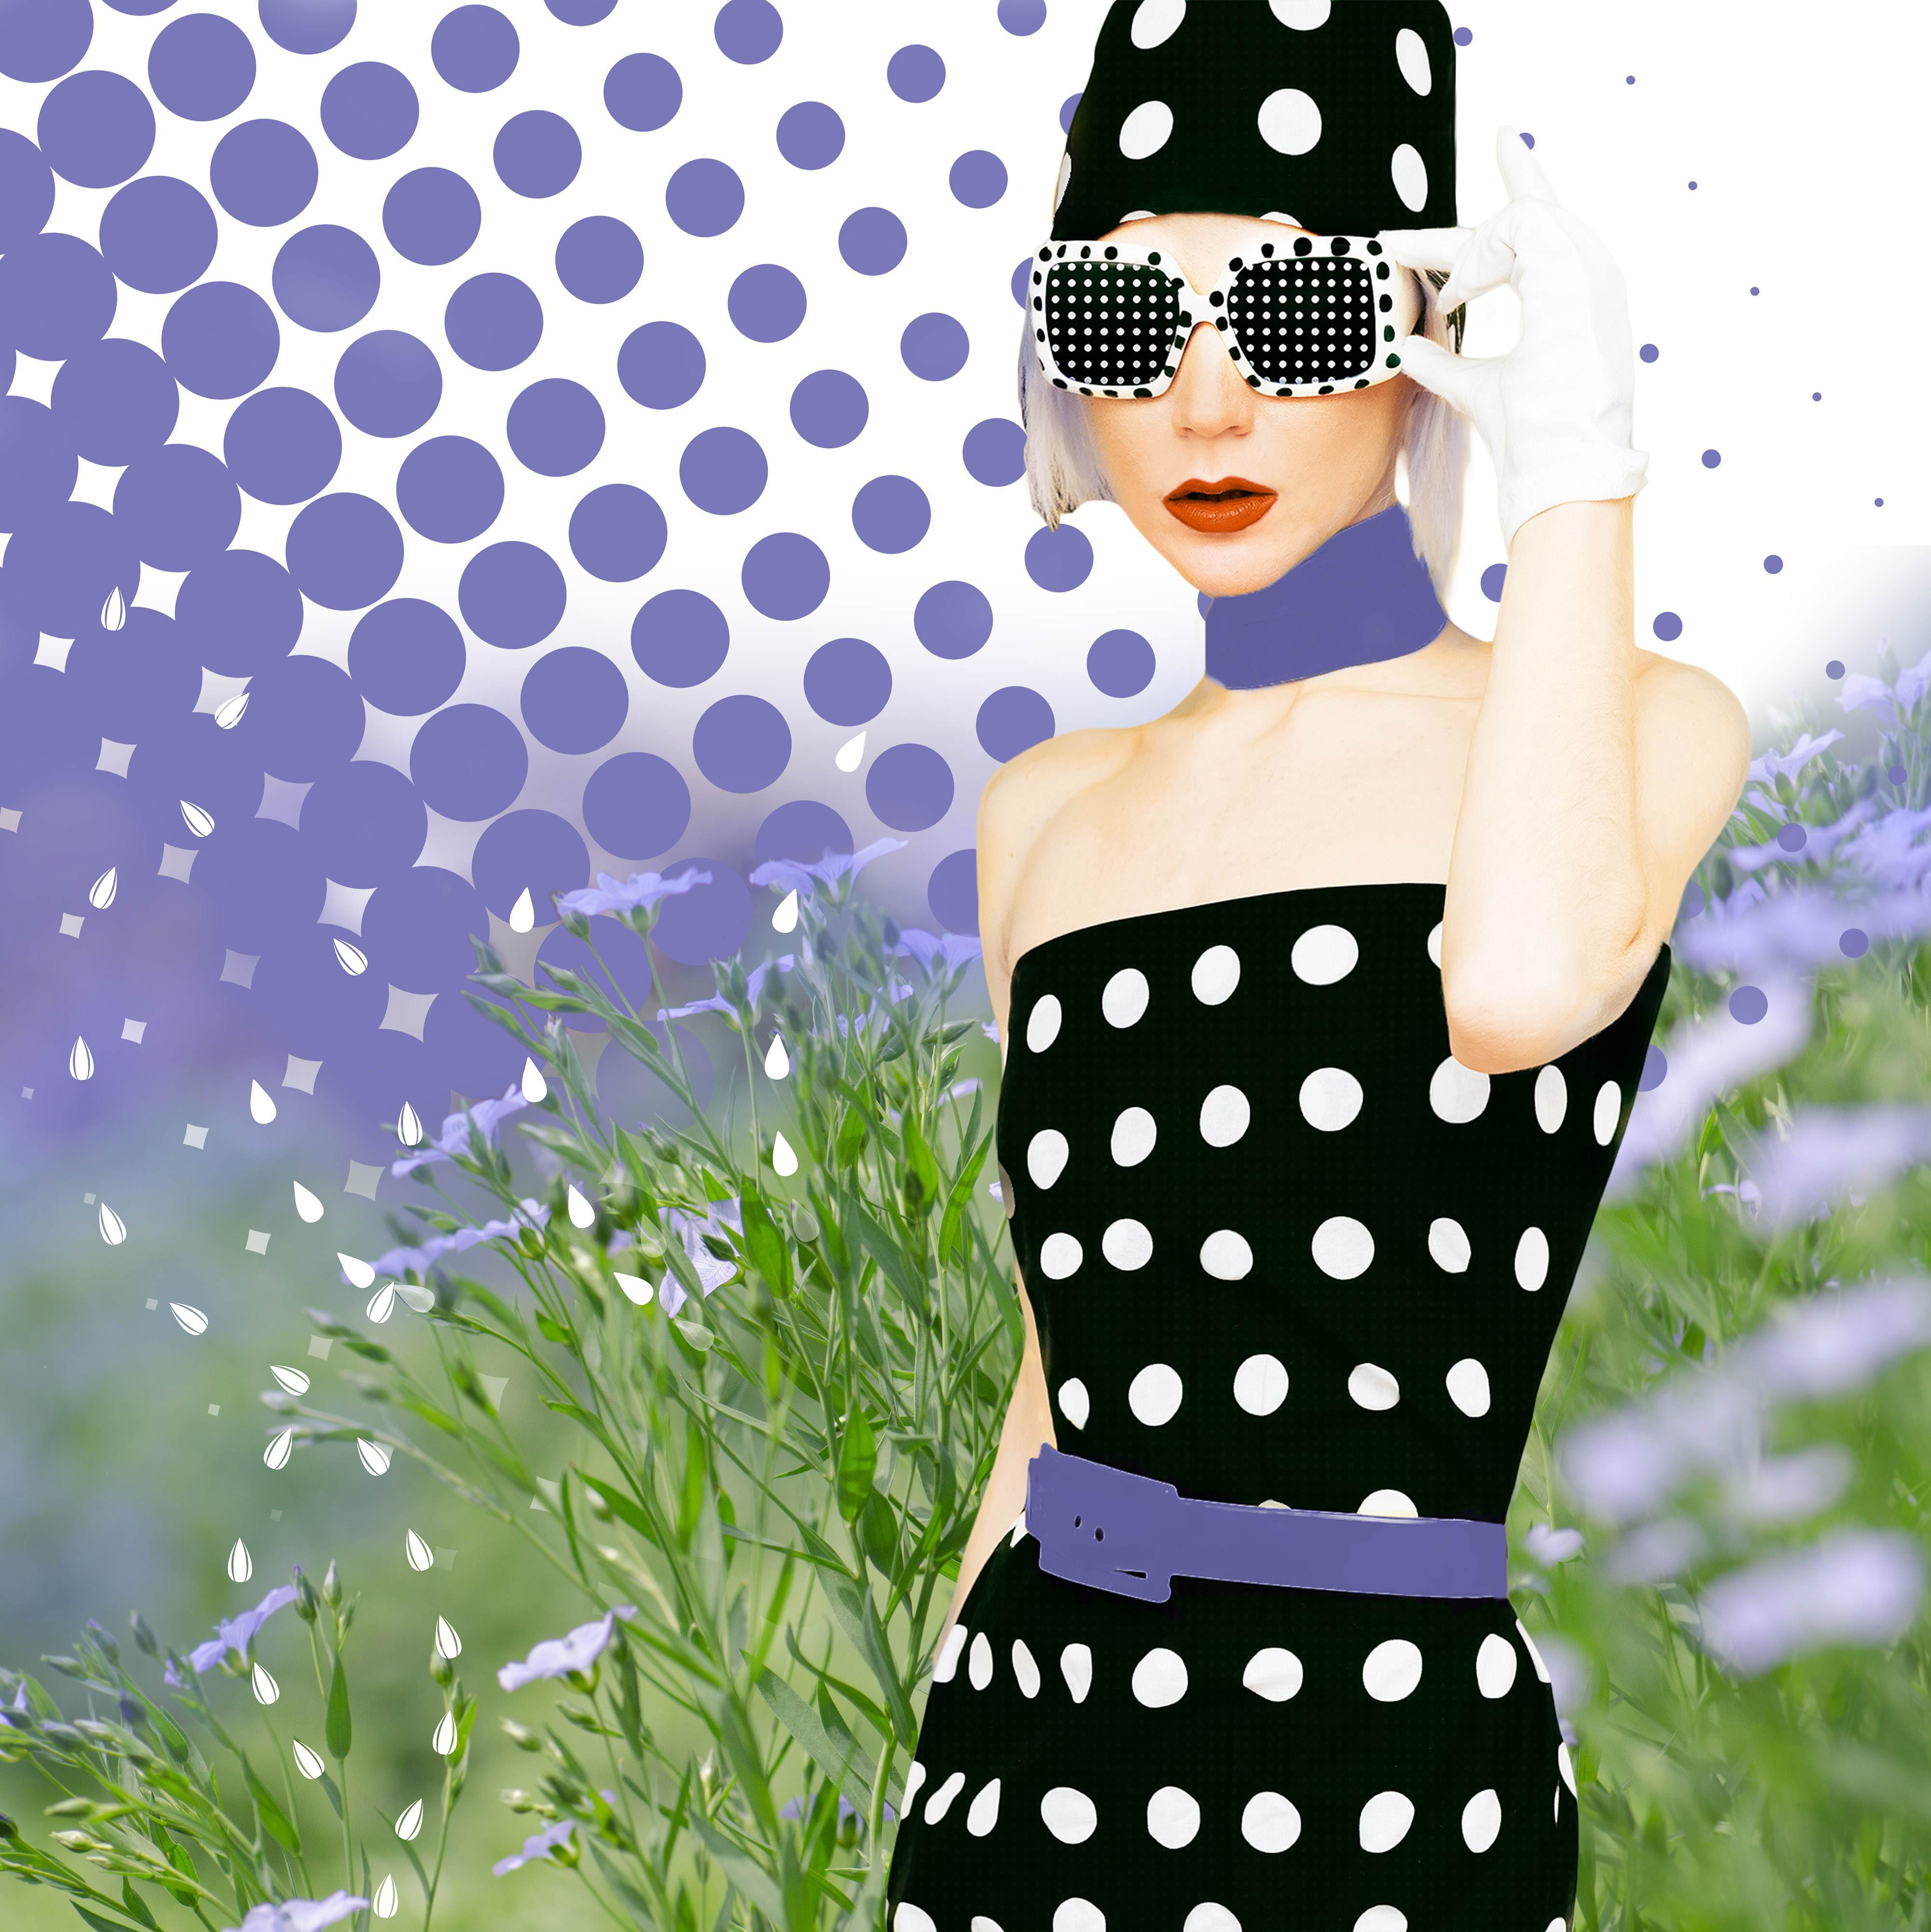 PoreTect Lady with black dress with white dots